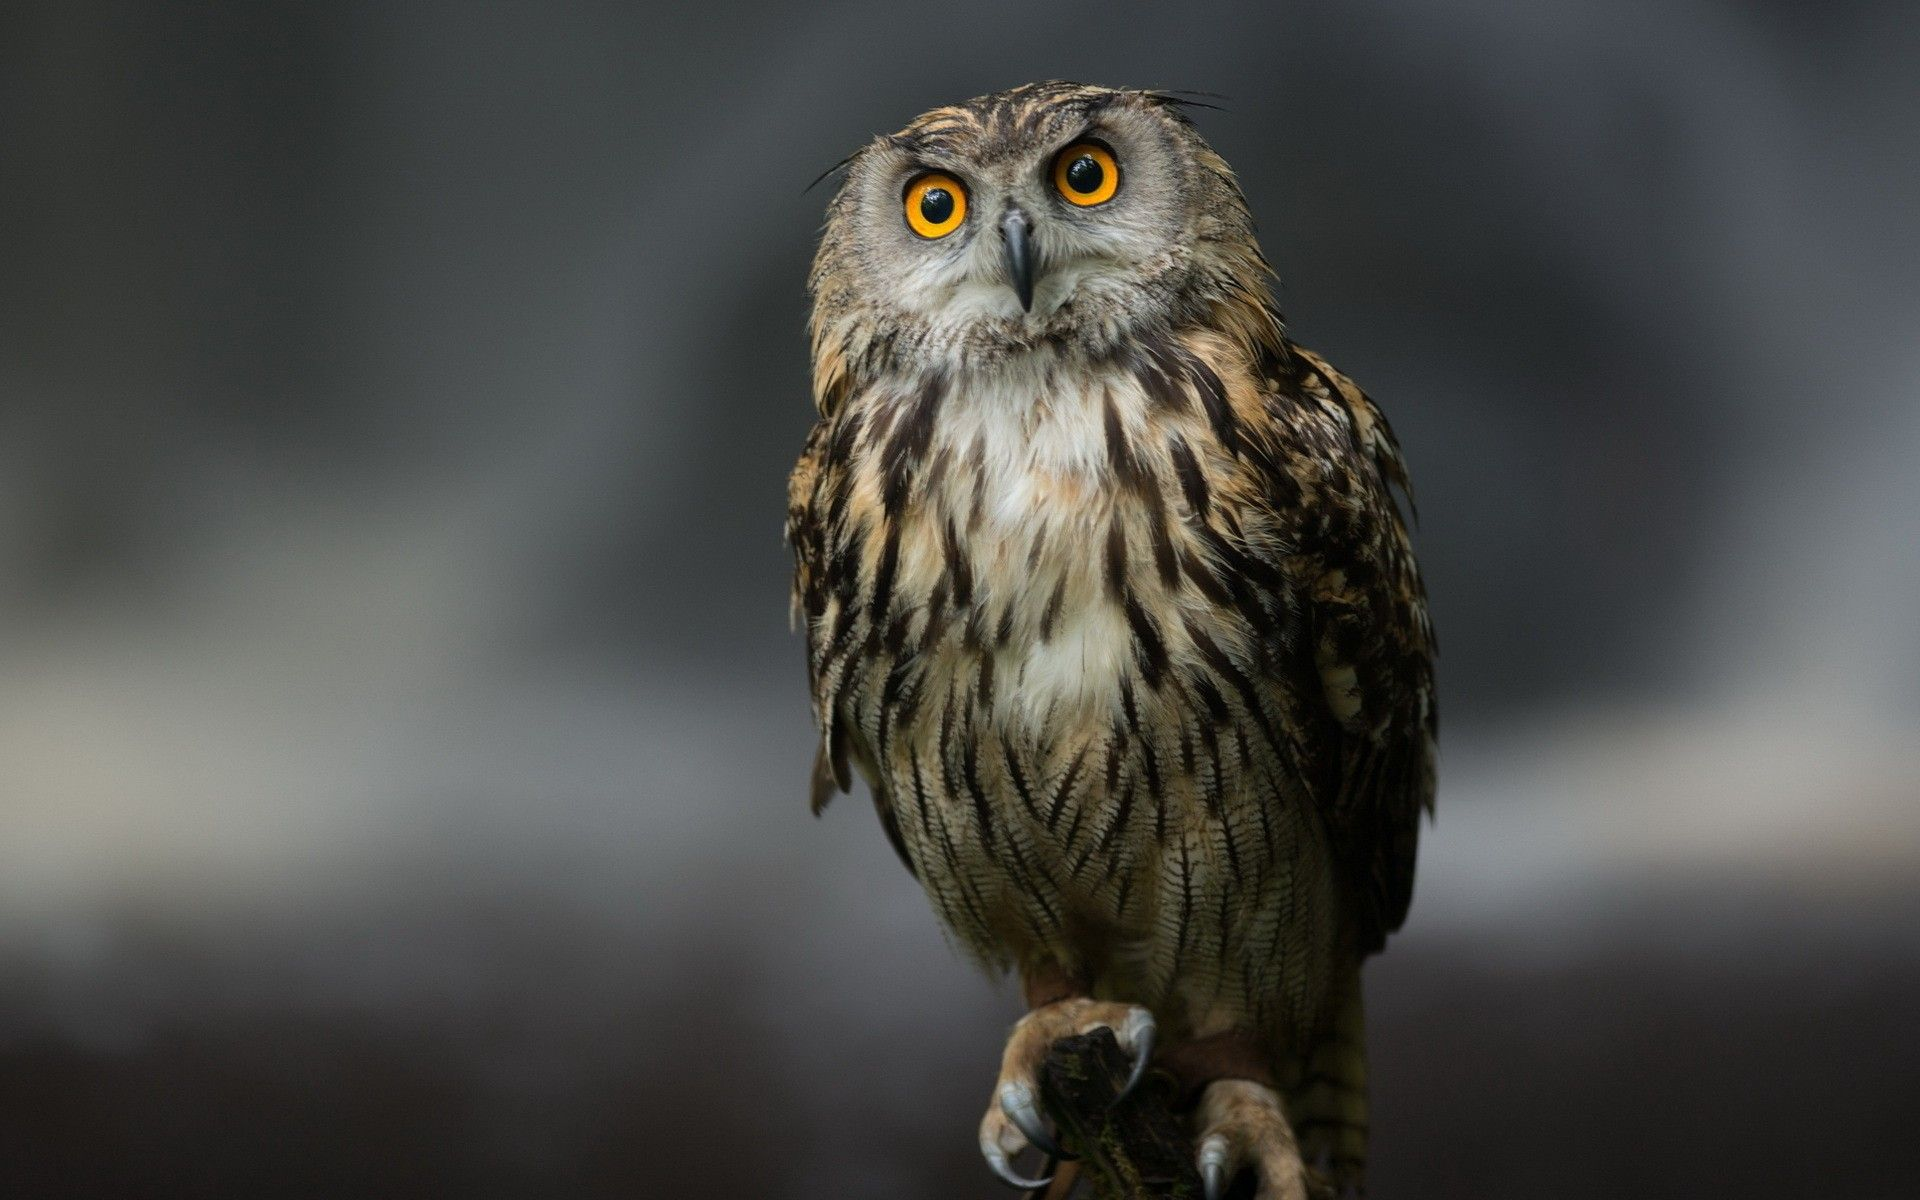 ultra hd owl serious look | ultra hd wallpapers | pinterest | owl